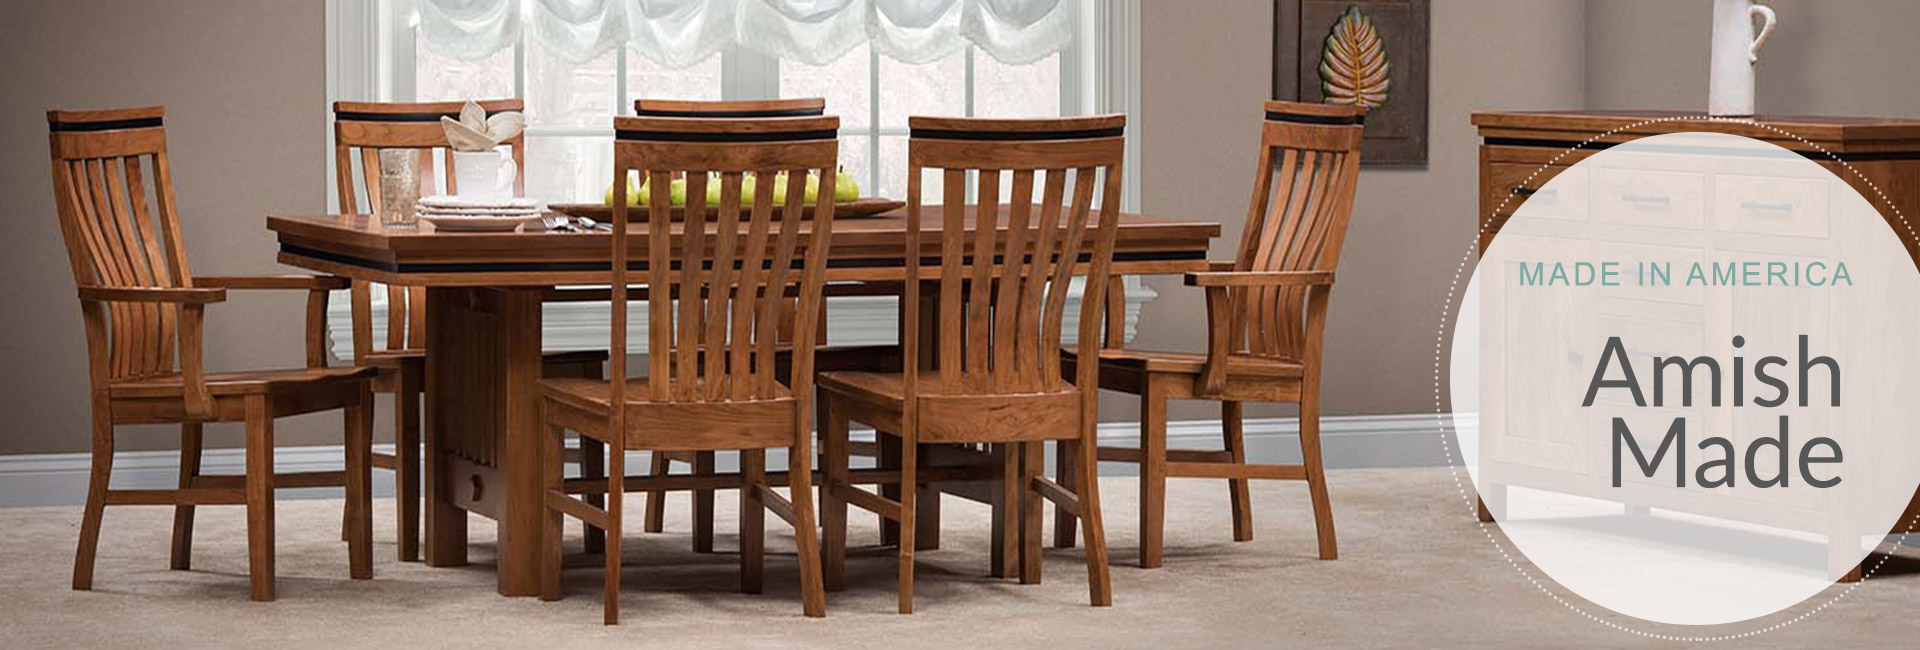 Kentucky Amish Hardwood Furniture